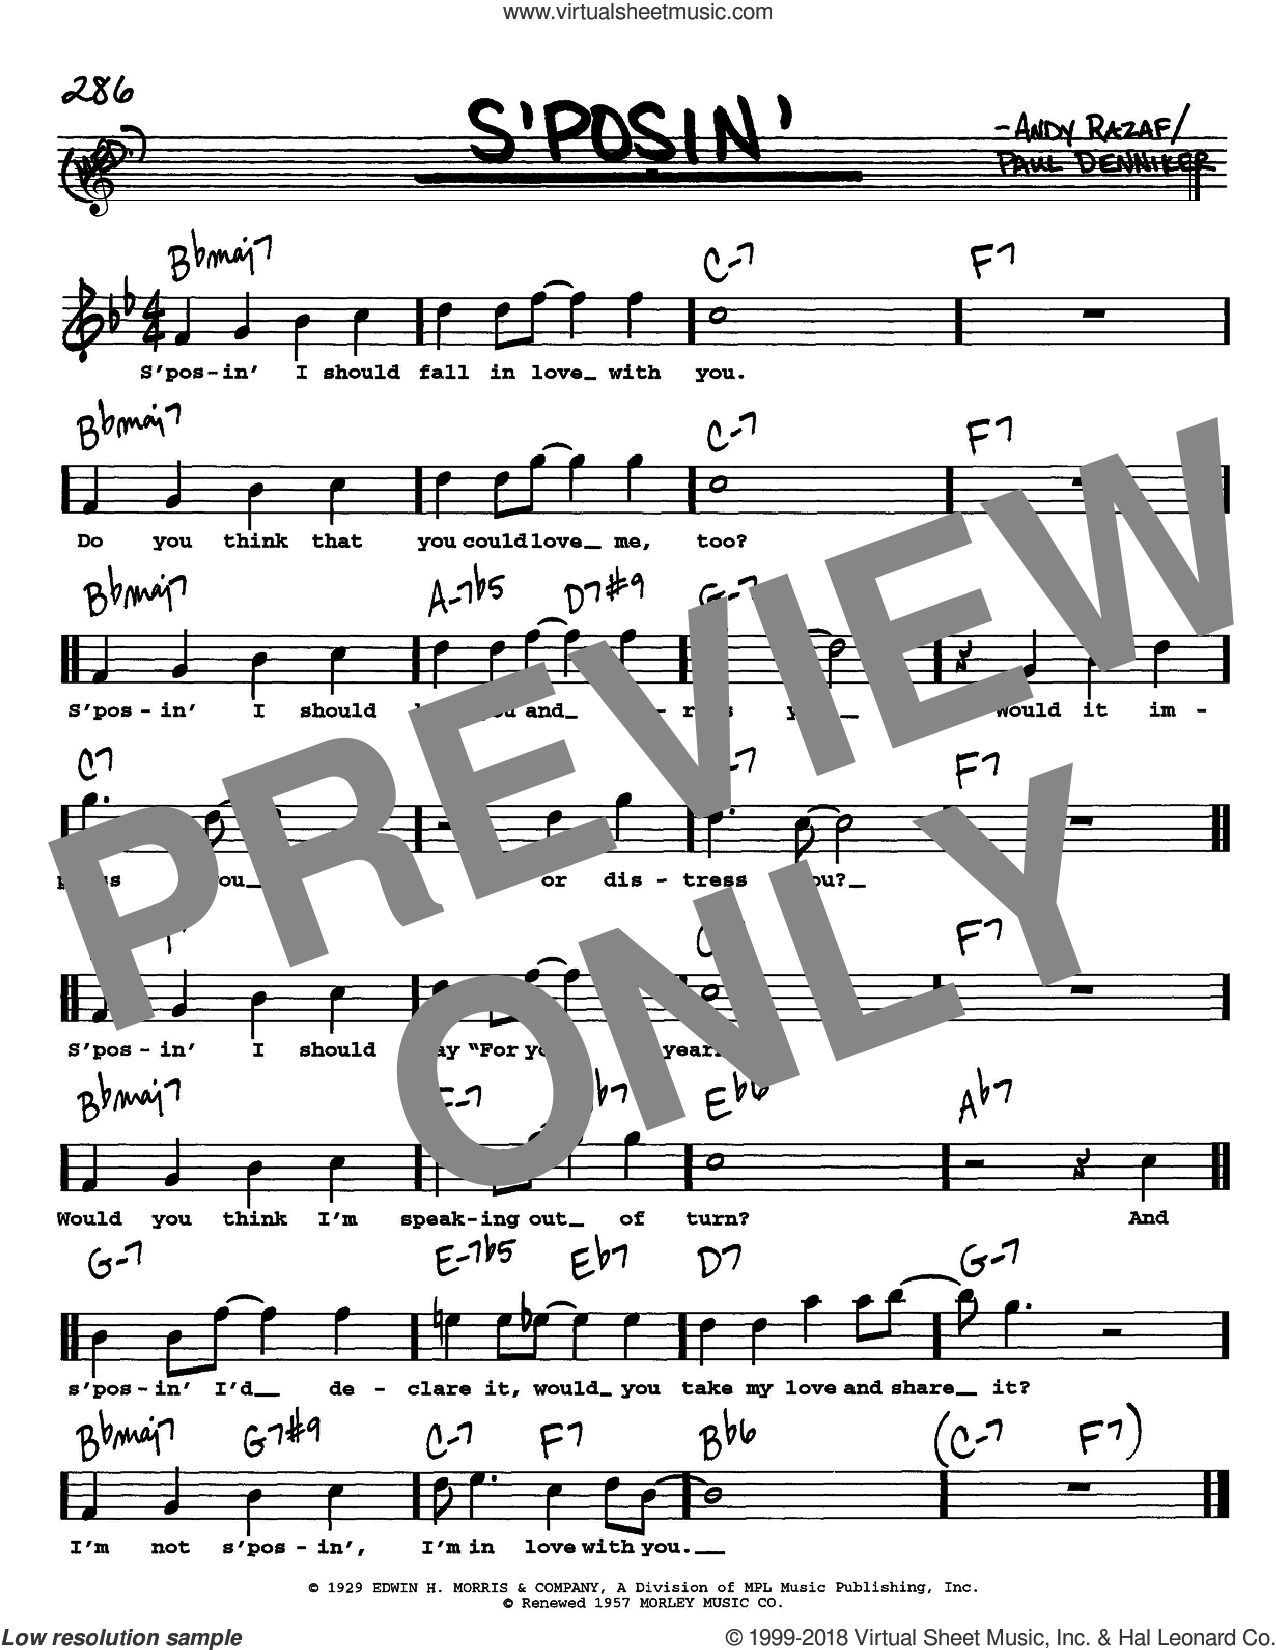 S'posin' sheet music for voice and other instruments  by Frank Sinatra, Andy Razaf and Paul Denniker, intermediate skill level